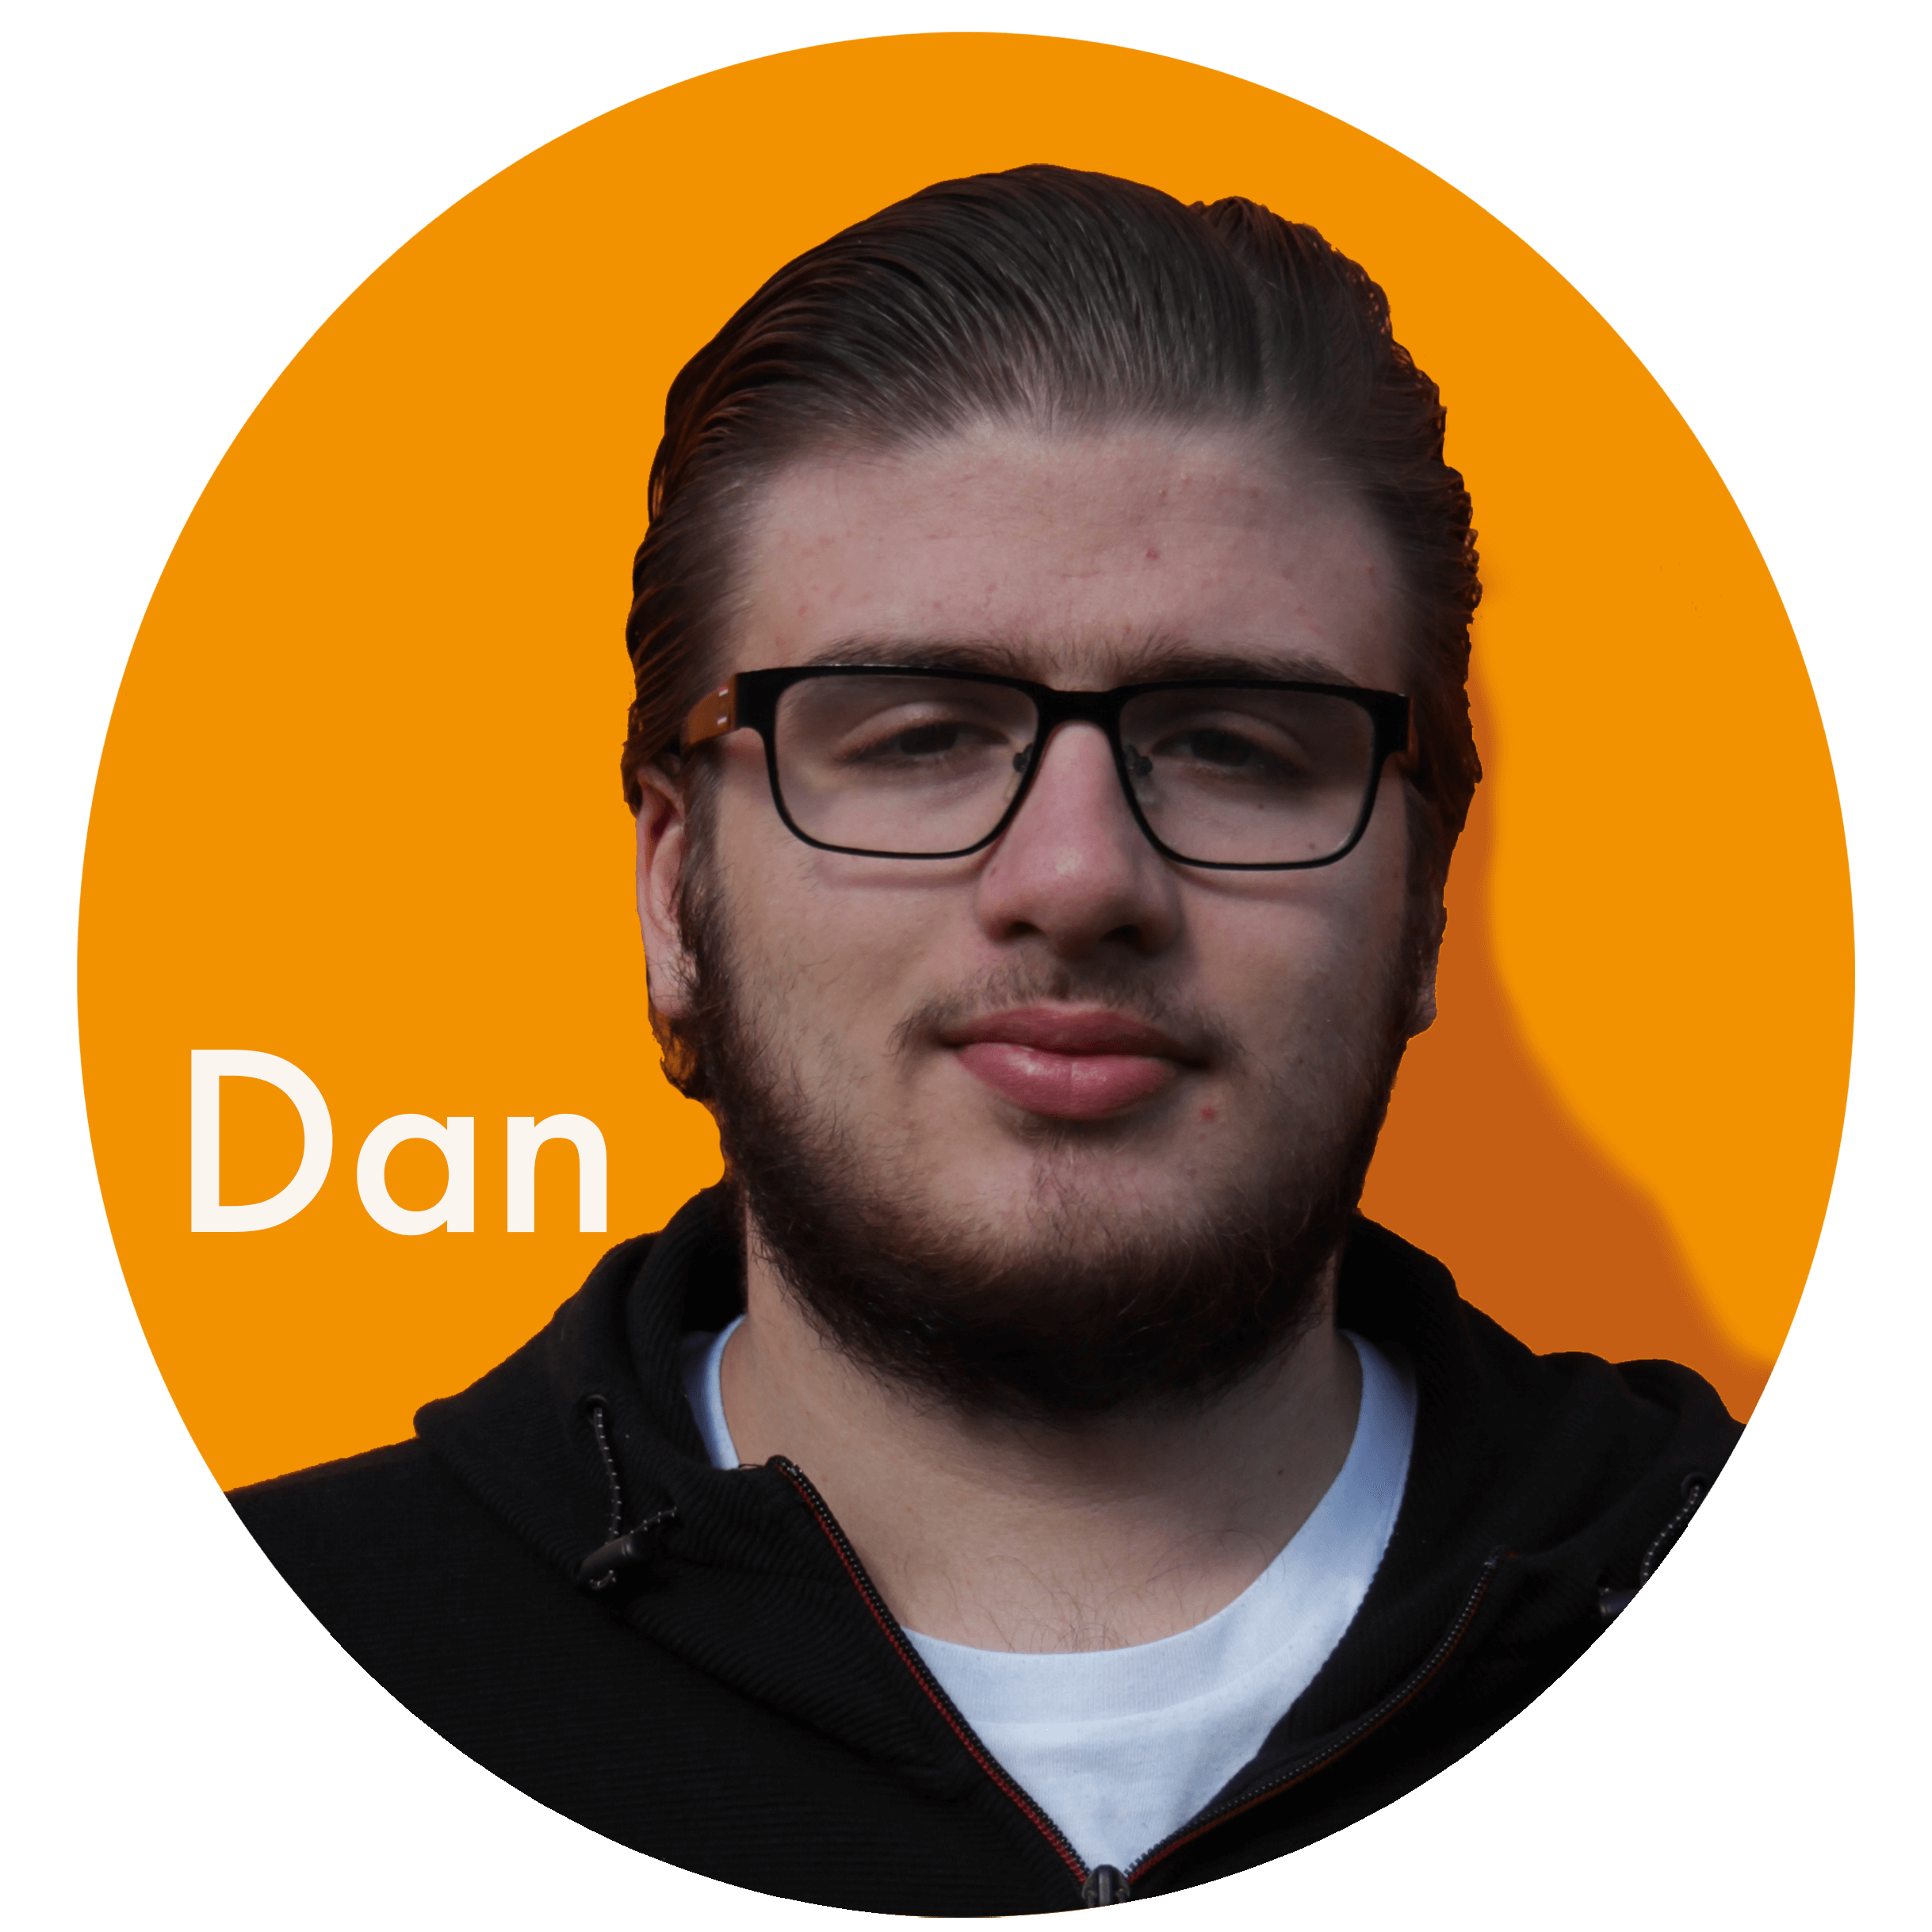 Dan   Dan owns ten lightsabres. He's a film buff and secretly plays the piano.